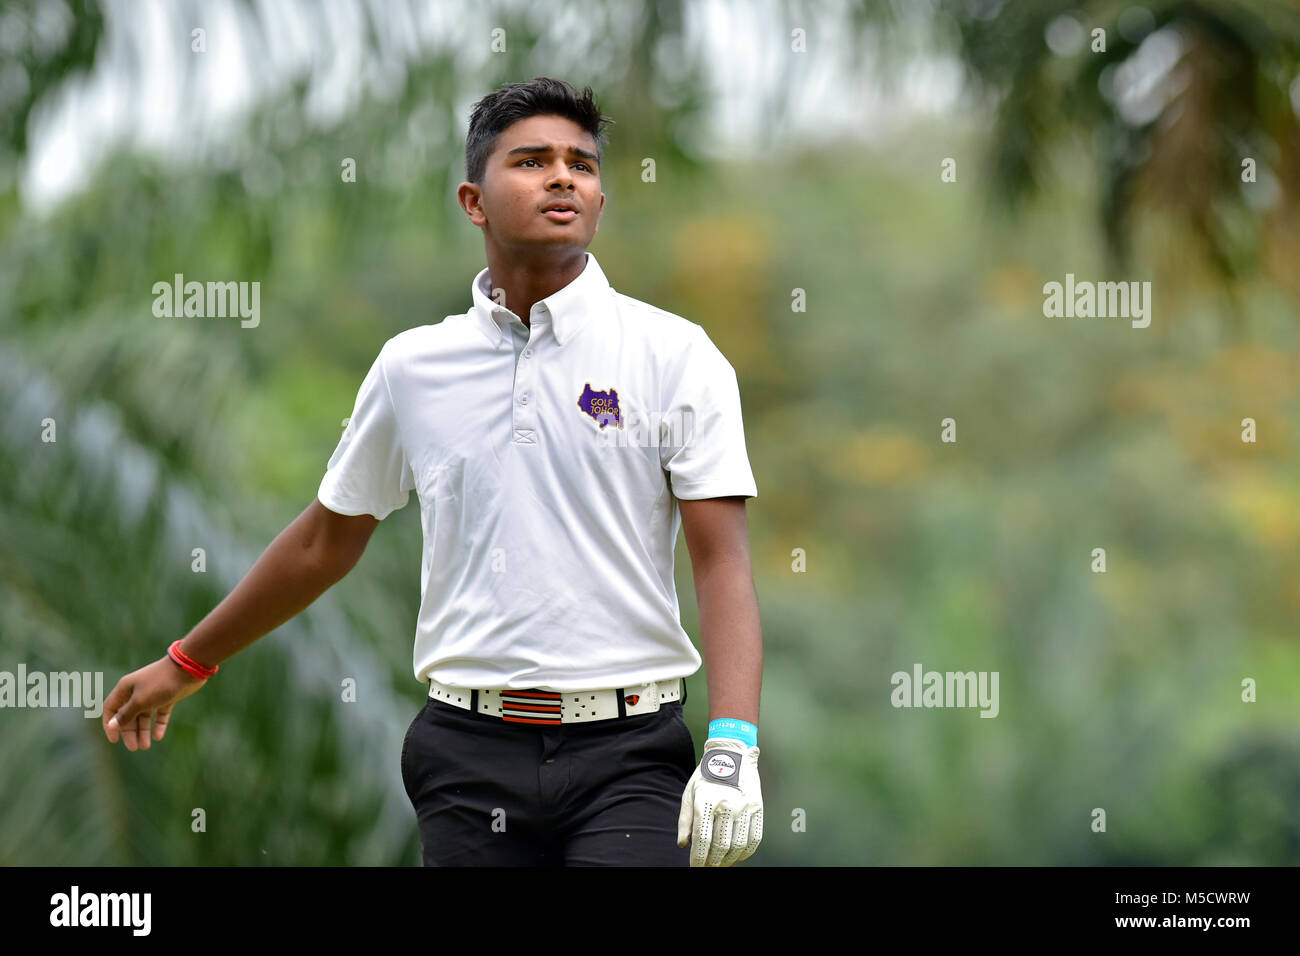 Danau, UKM Bangi - FEBRUARY 10: Darshan Gunasegar takes his tee shot on the 6th hole during Round One of the Danau - Stock Image